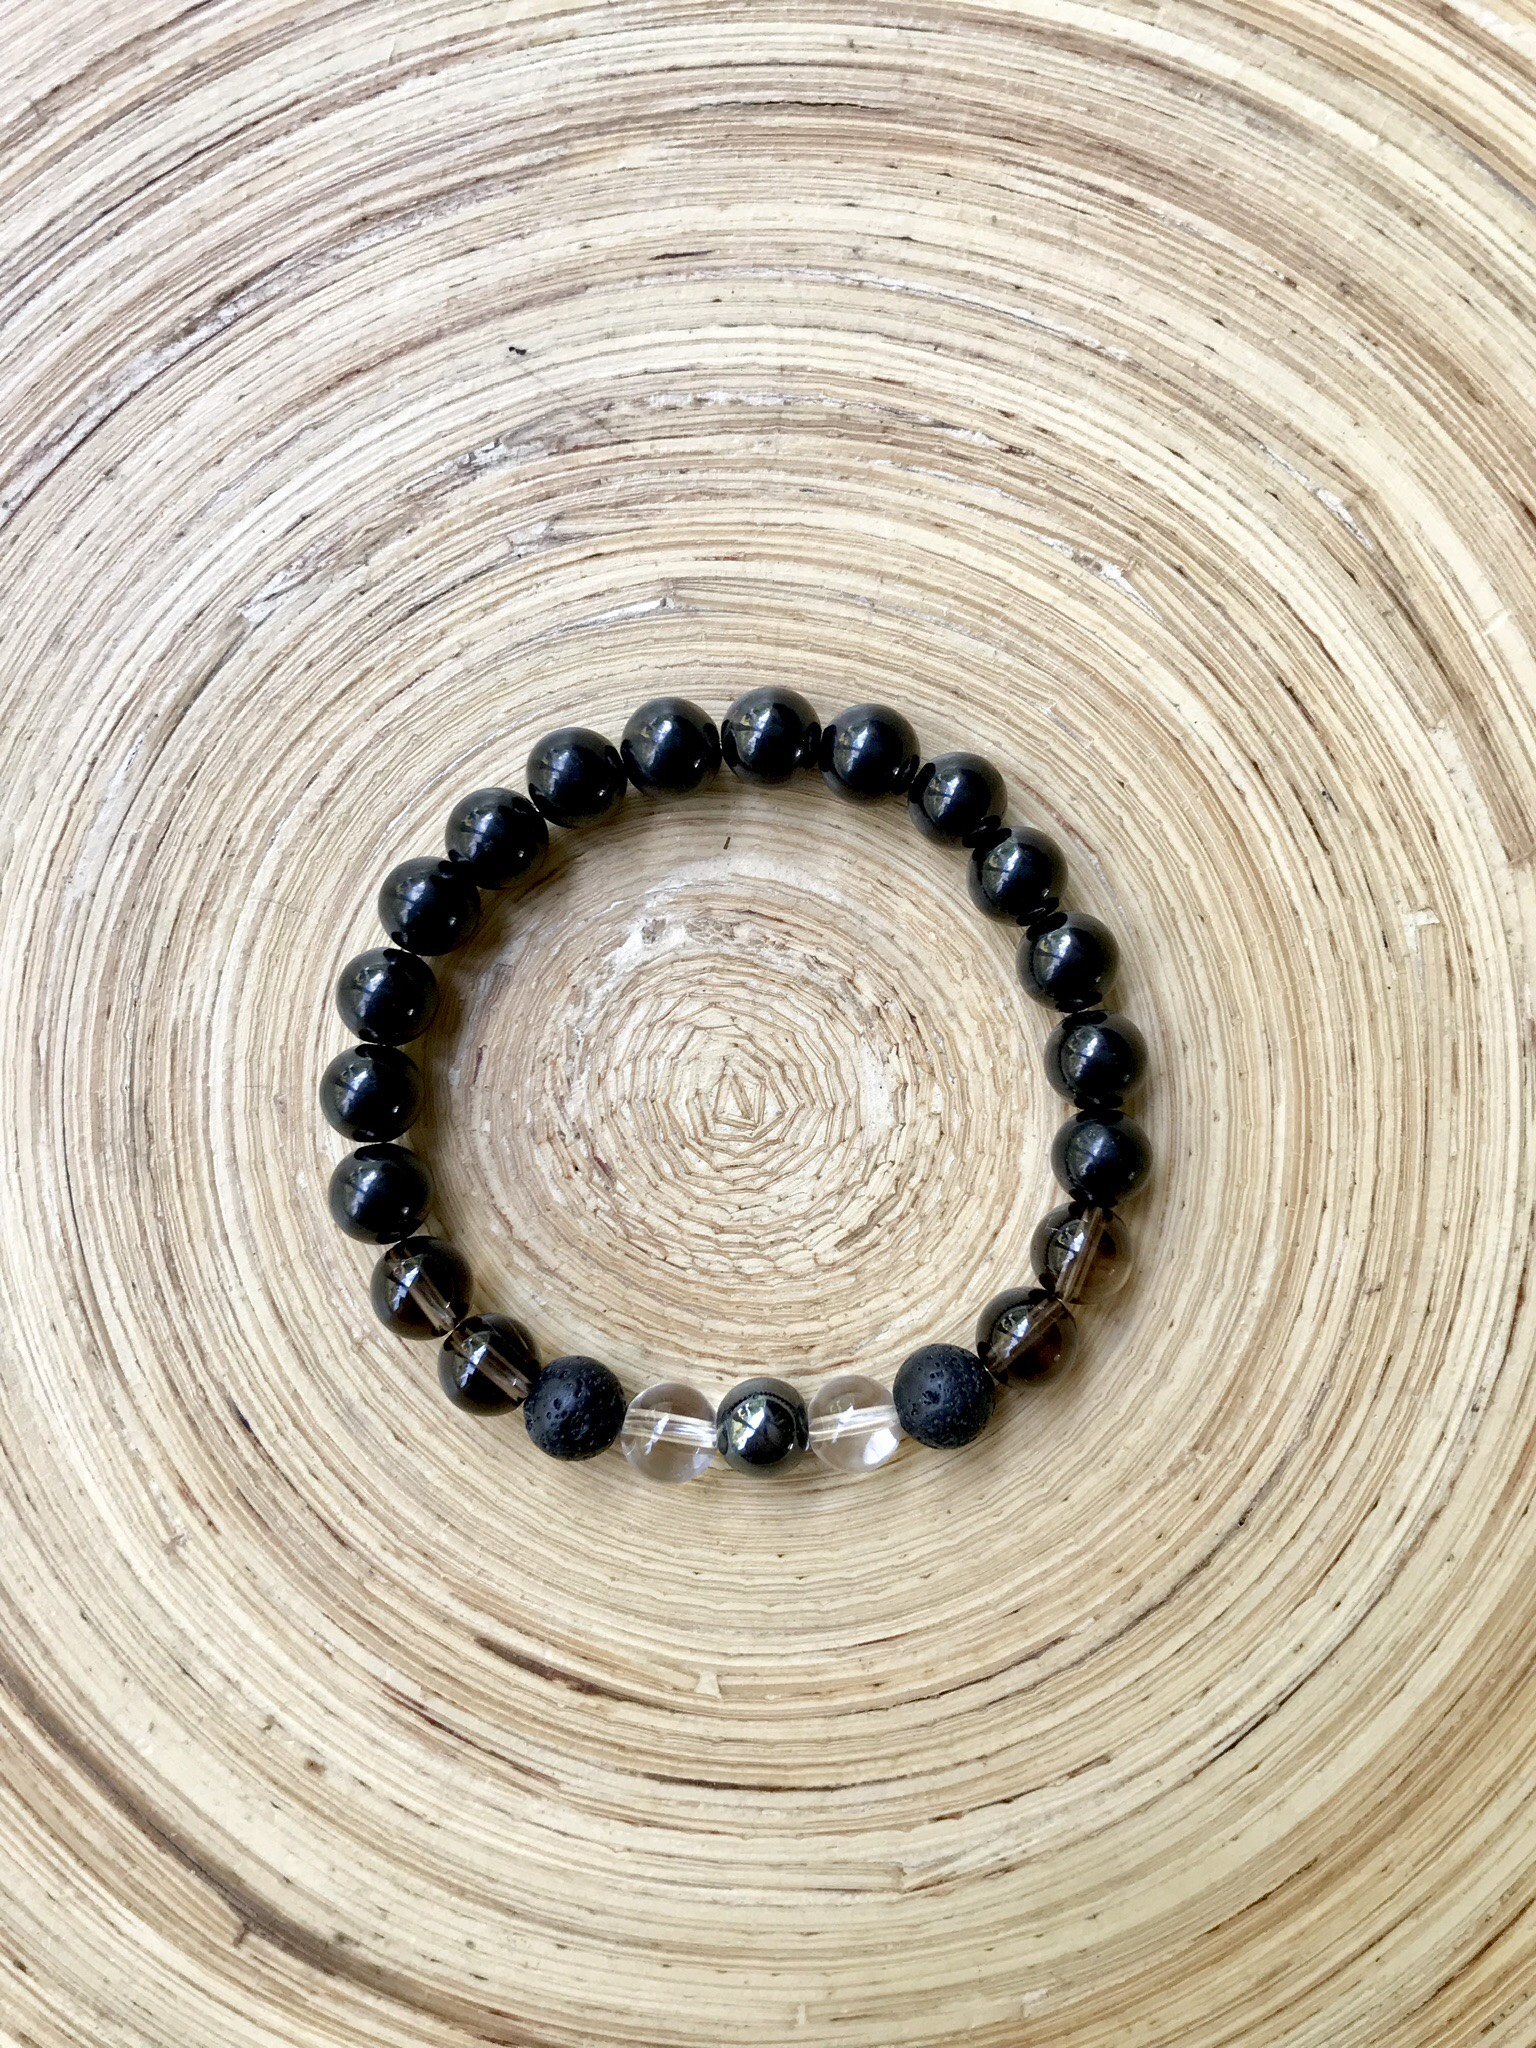 I Am Fearless Mala Bracelet made with Shungite and Lava Beads for Aromatherapy